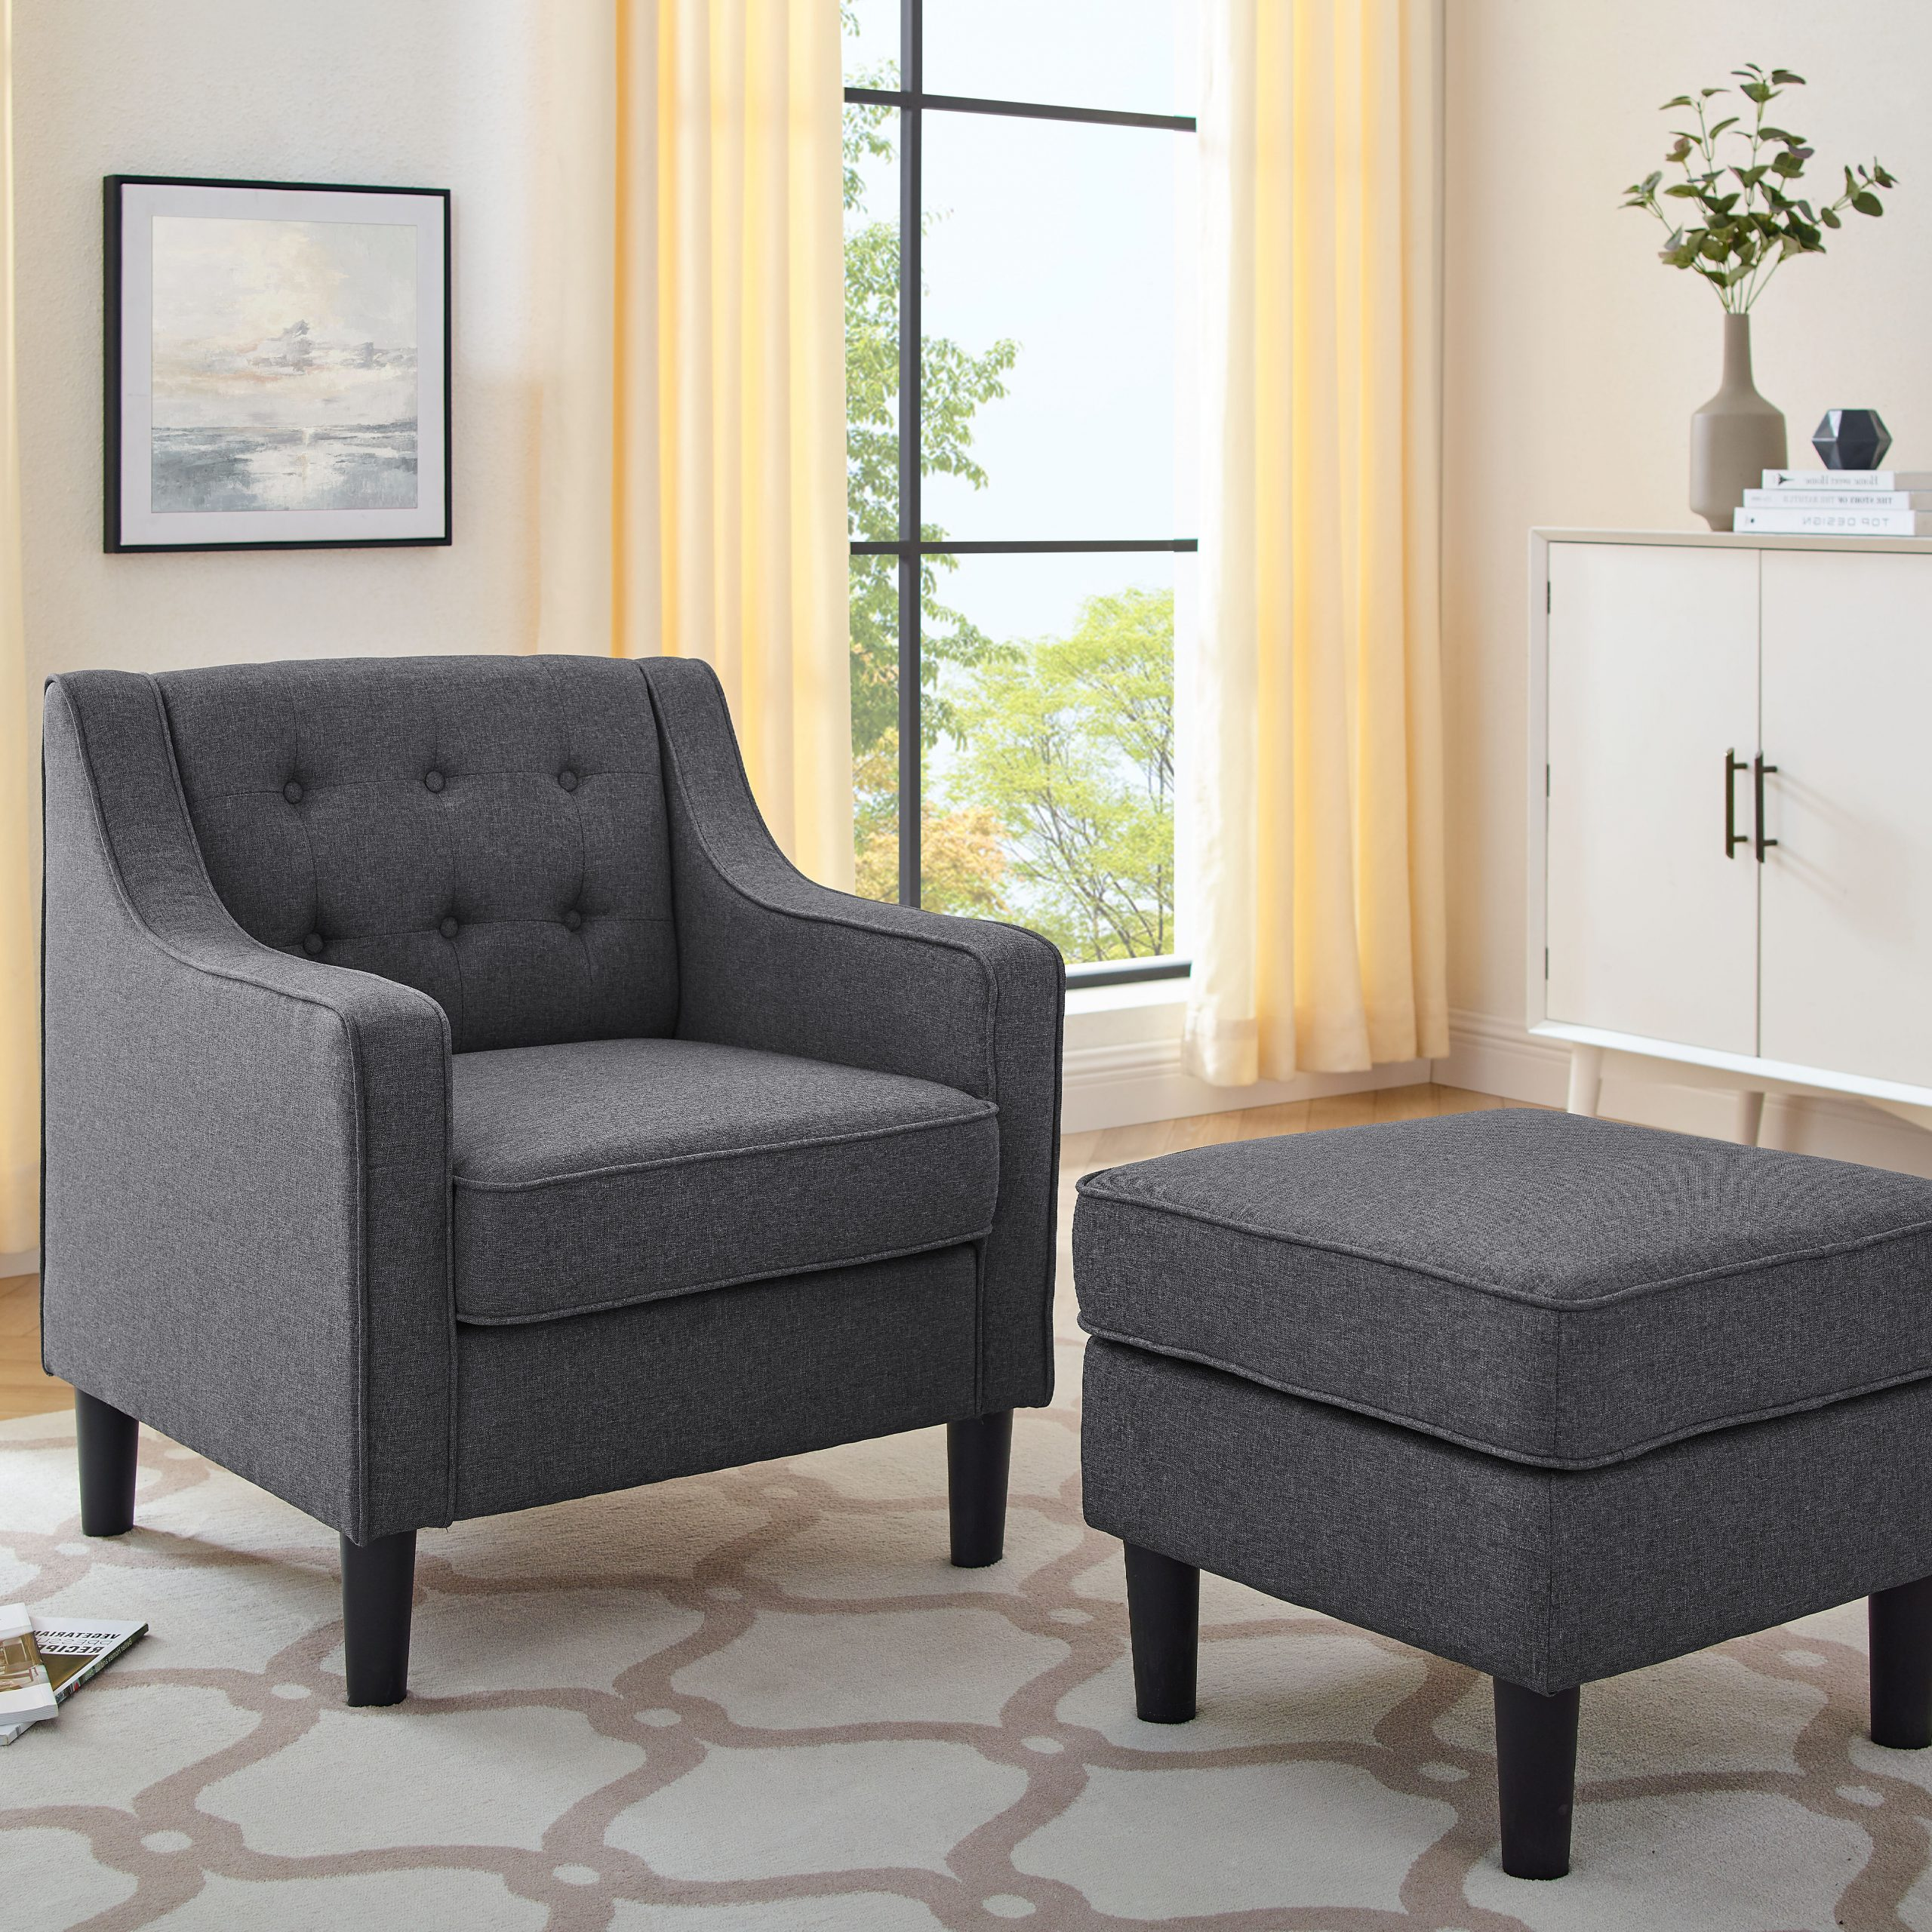 Briseno Barrel Chairs Intended For Latest Fieldbrook Armchair And Ottoman (View 20 of 20)